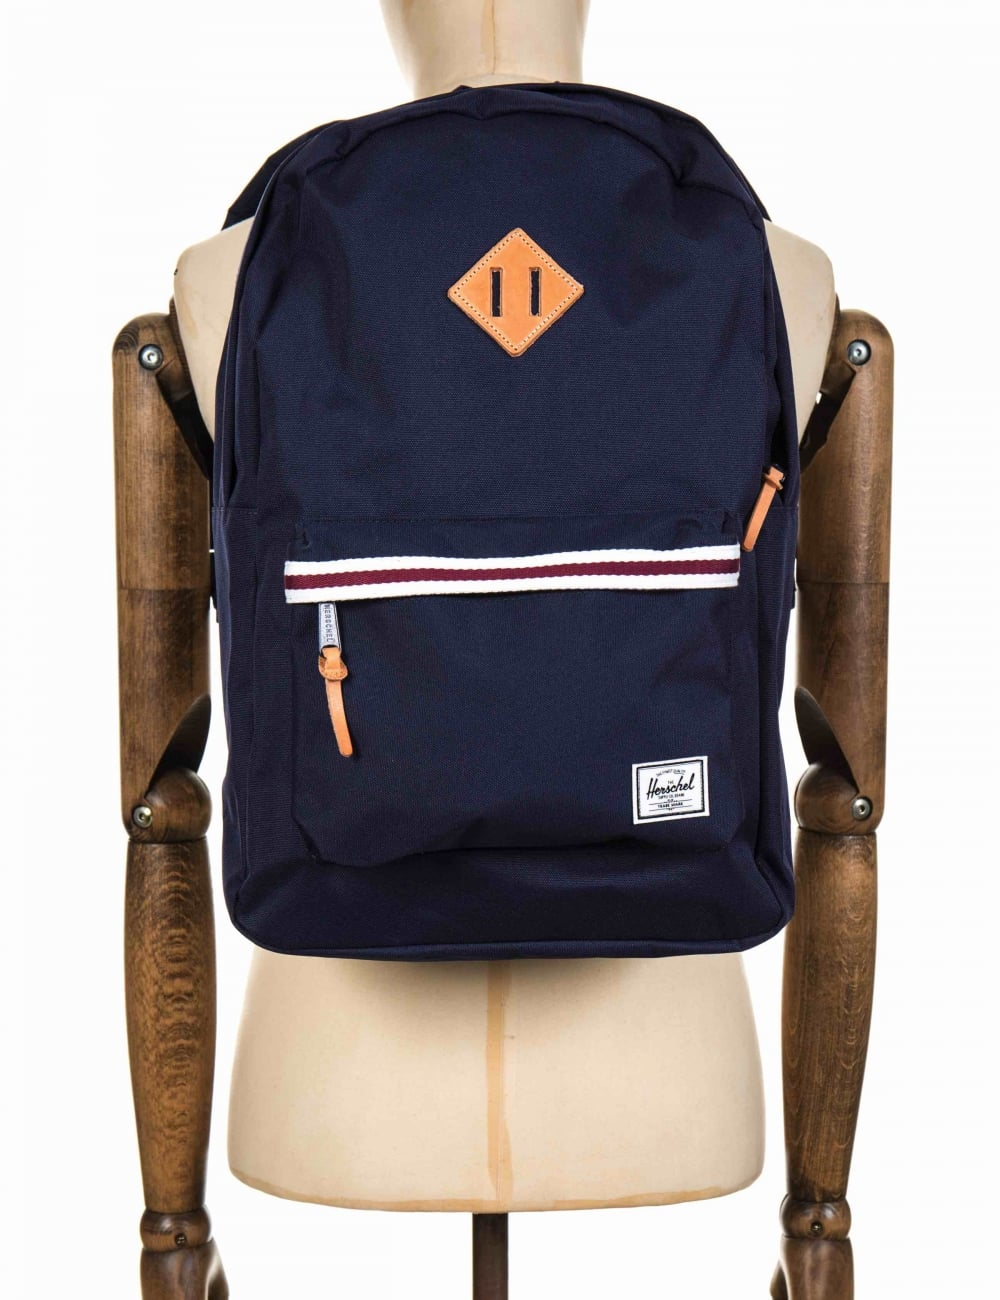 5412a638f38 Herschel Supply Co Heritage 21.5L Backpack - Peacoat White Windsor Wine